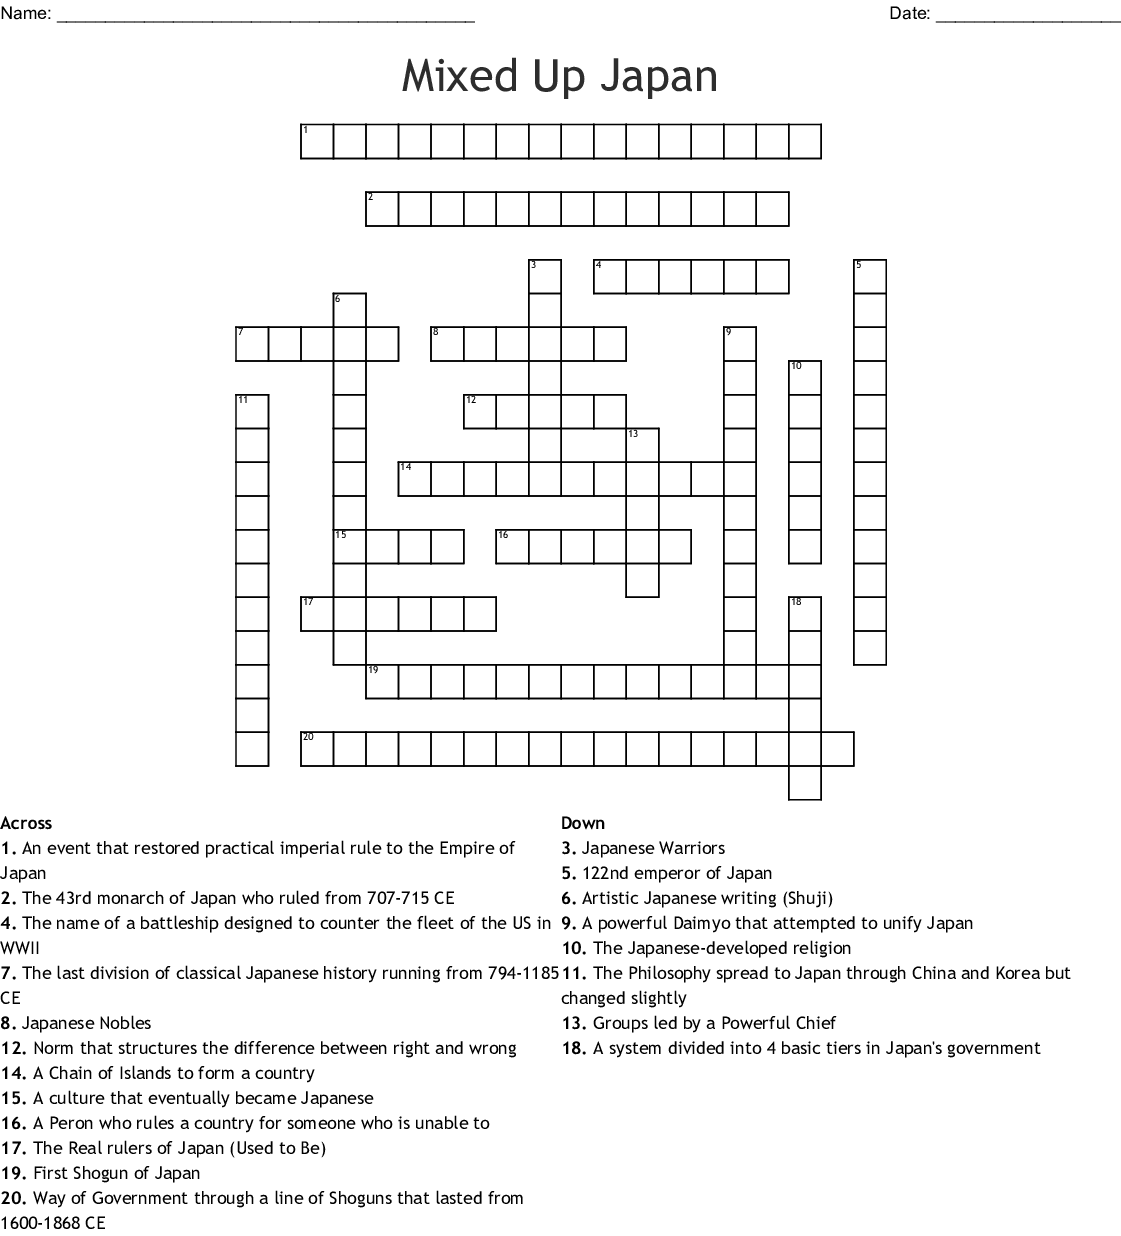 Mixed Up Japan Crossword